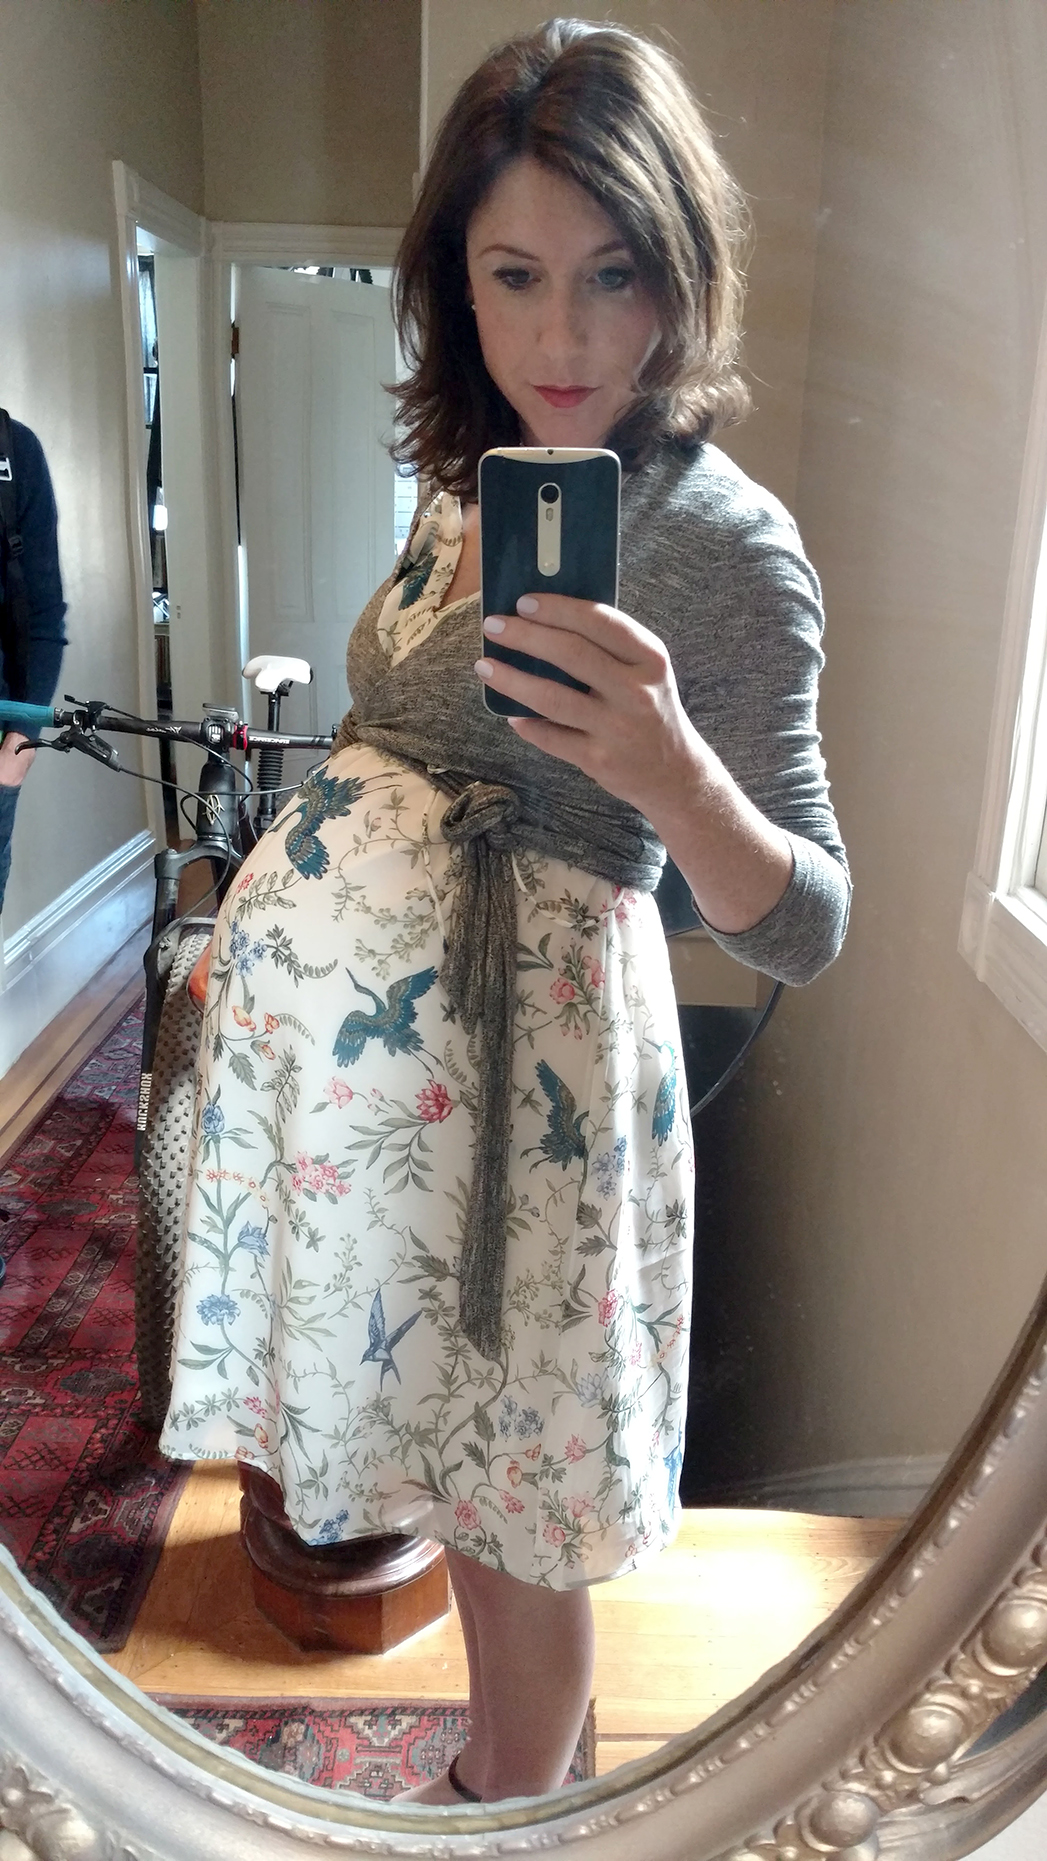 Maternity outfit 9 months pregnant